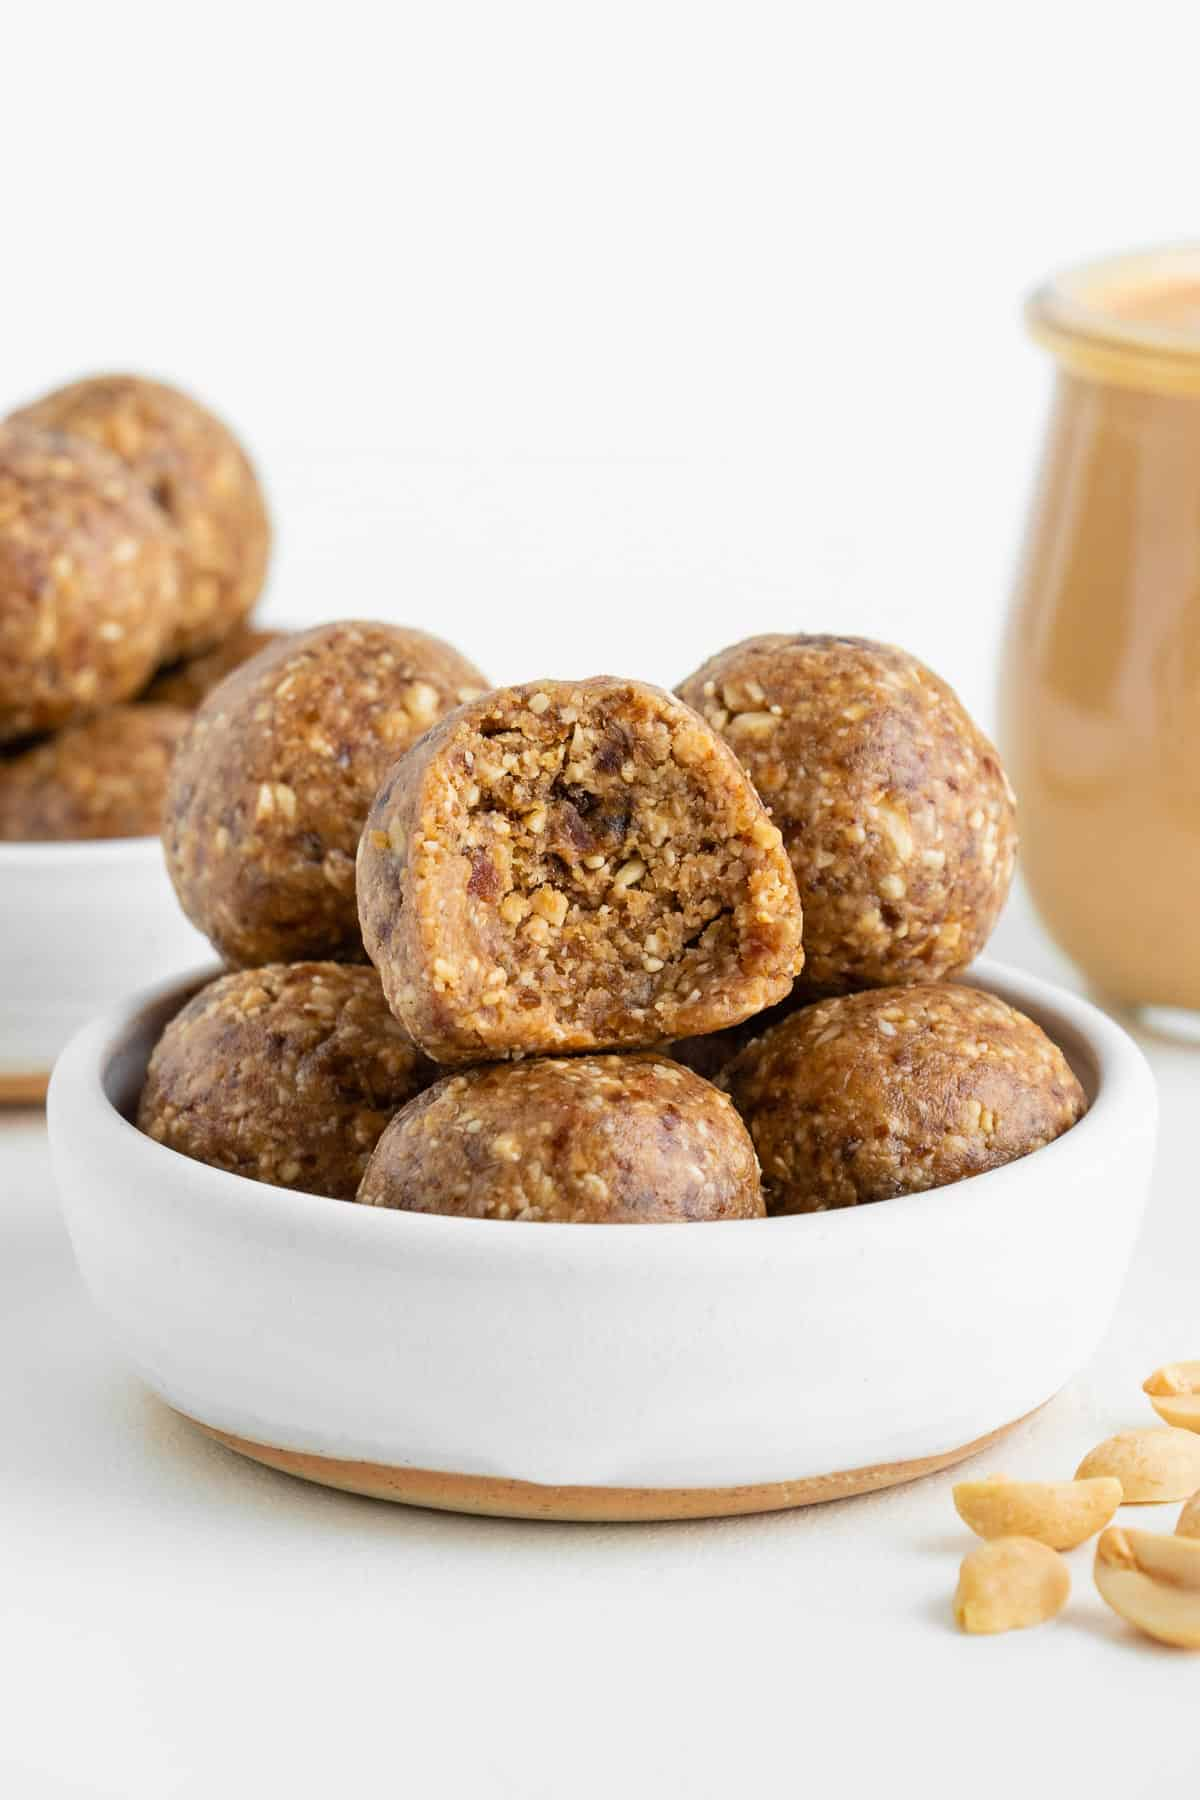 peanut butter energy balls stacked inside a white ceramic bowl with a bite taken out of the center ball